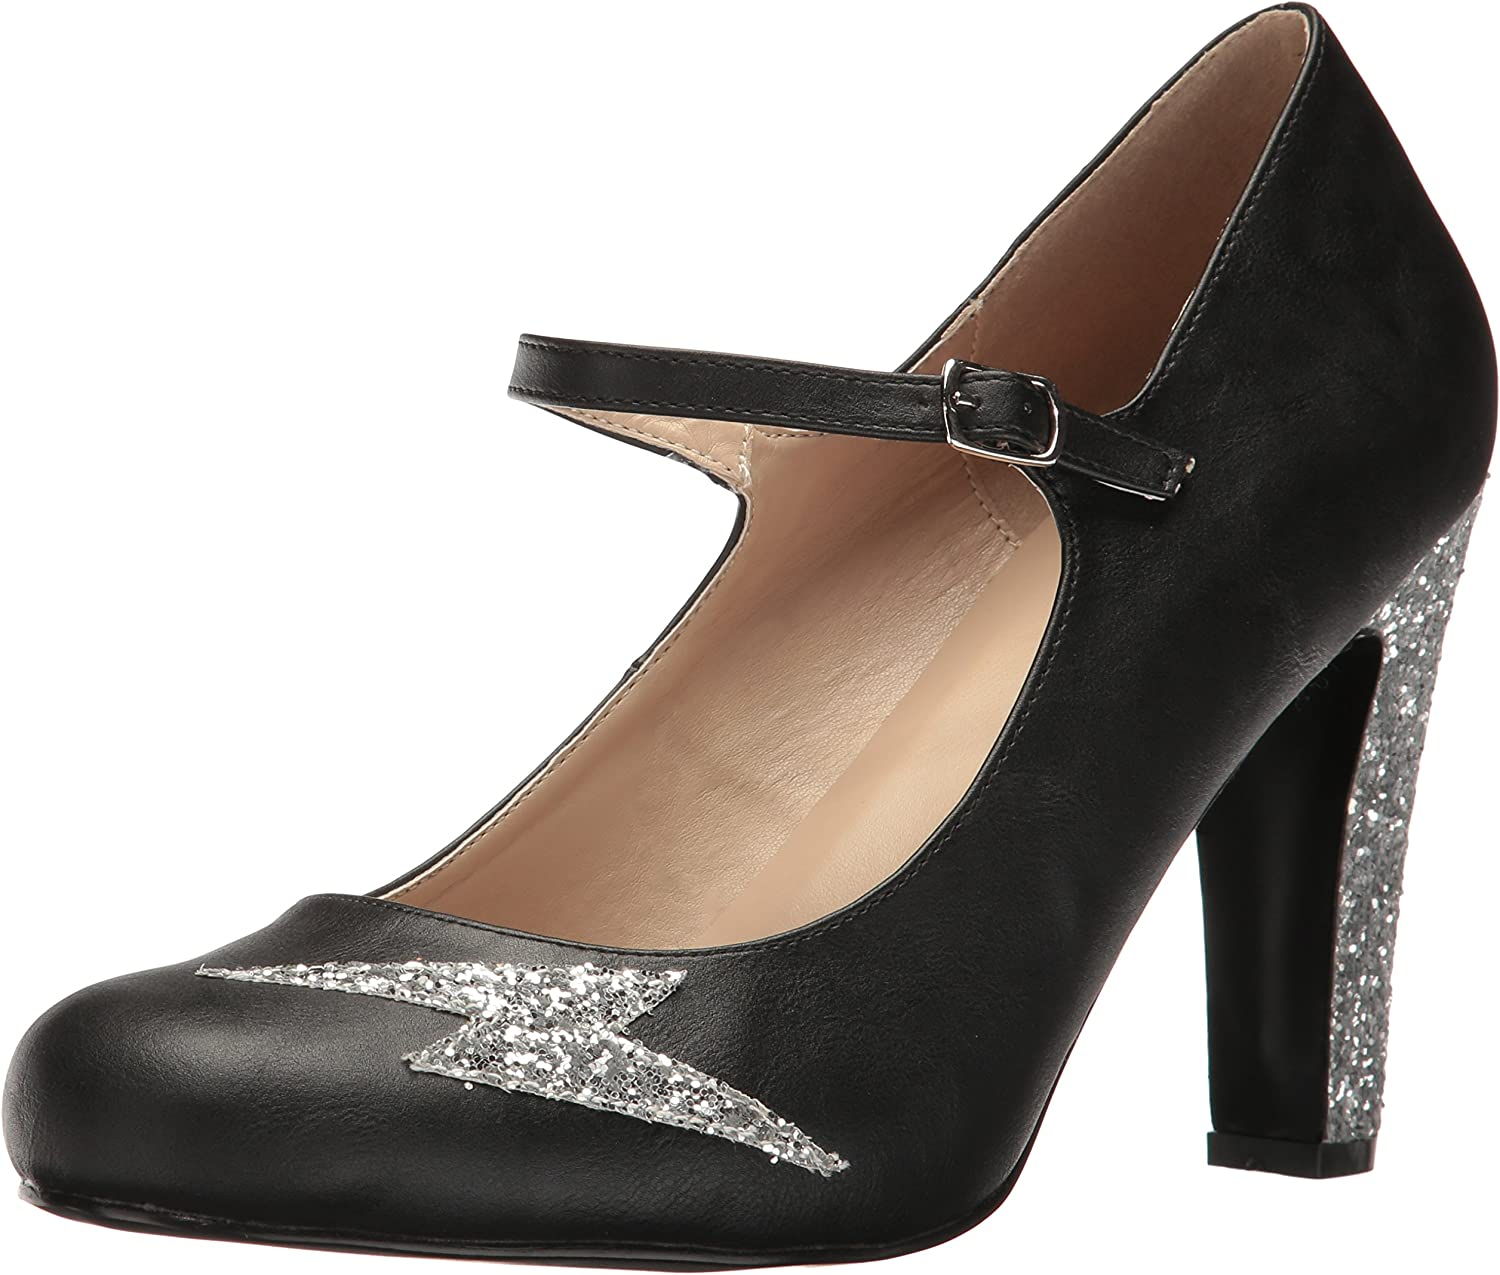 Pleaser Womens Queen02 Bpu-sg Dress Pump